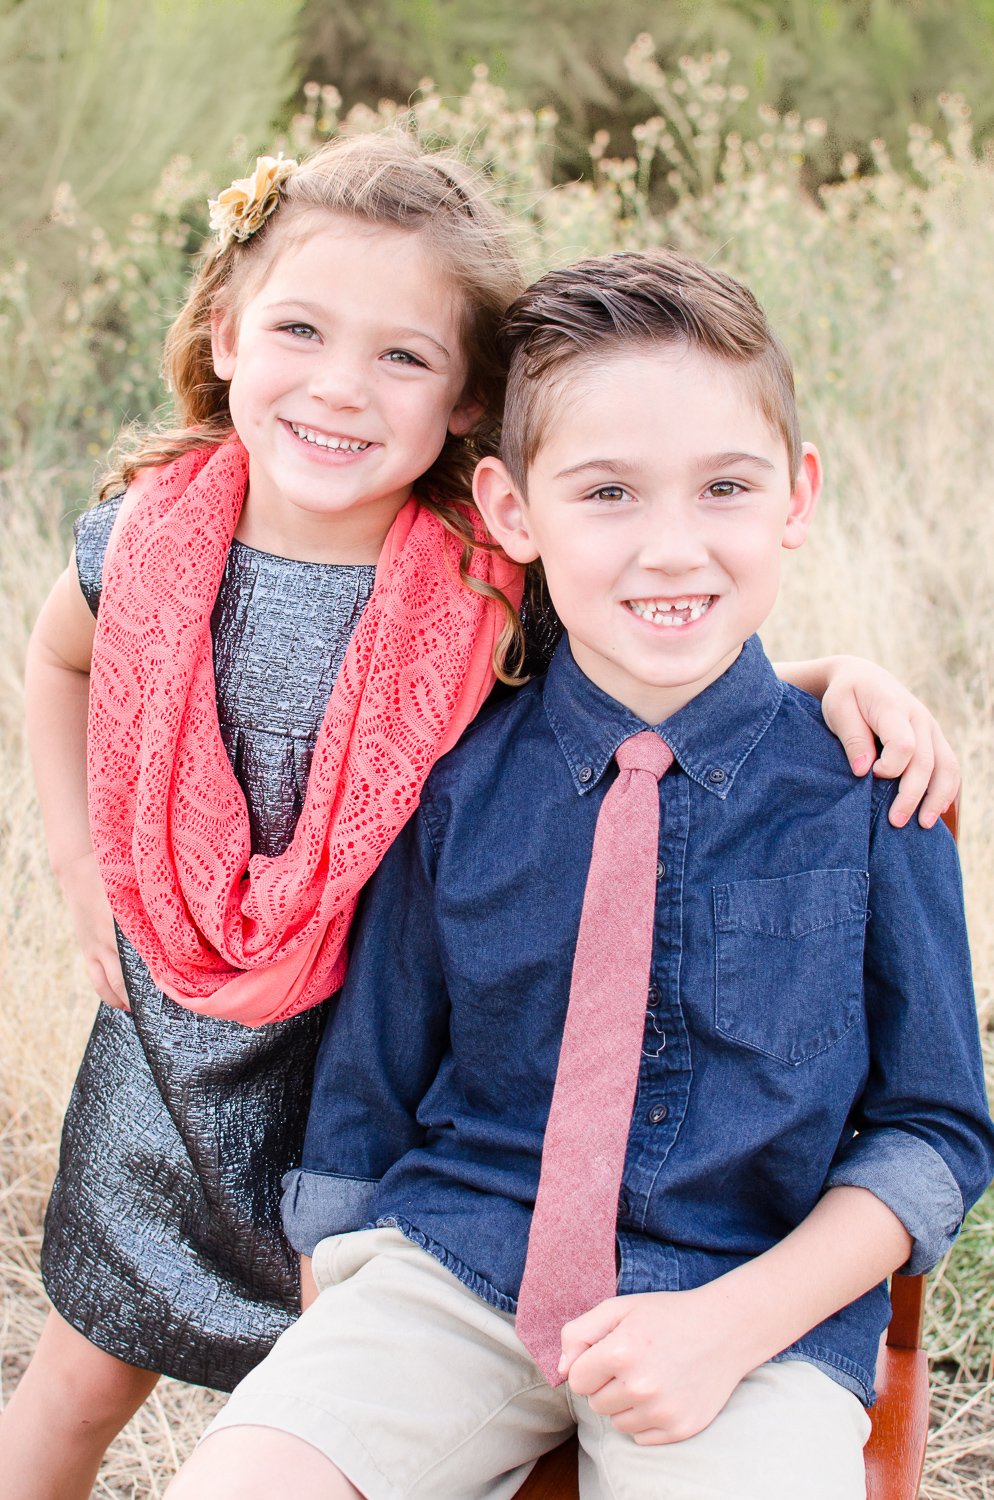 glendale arizona family photographer -09092015.jpg